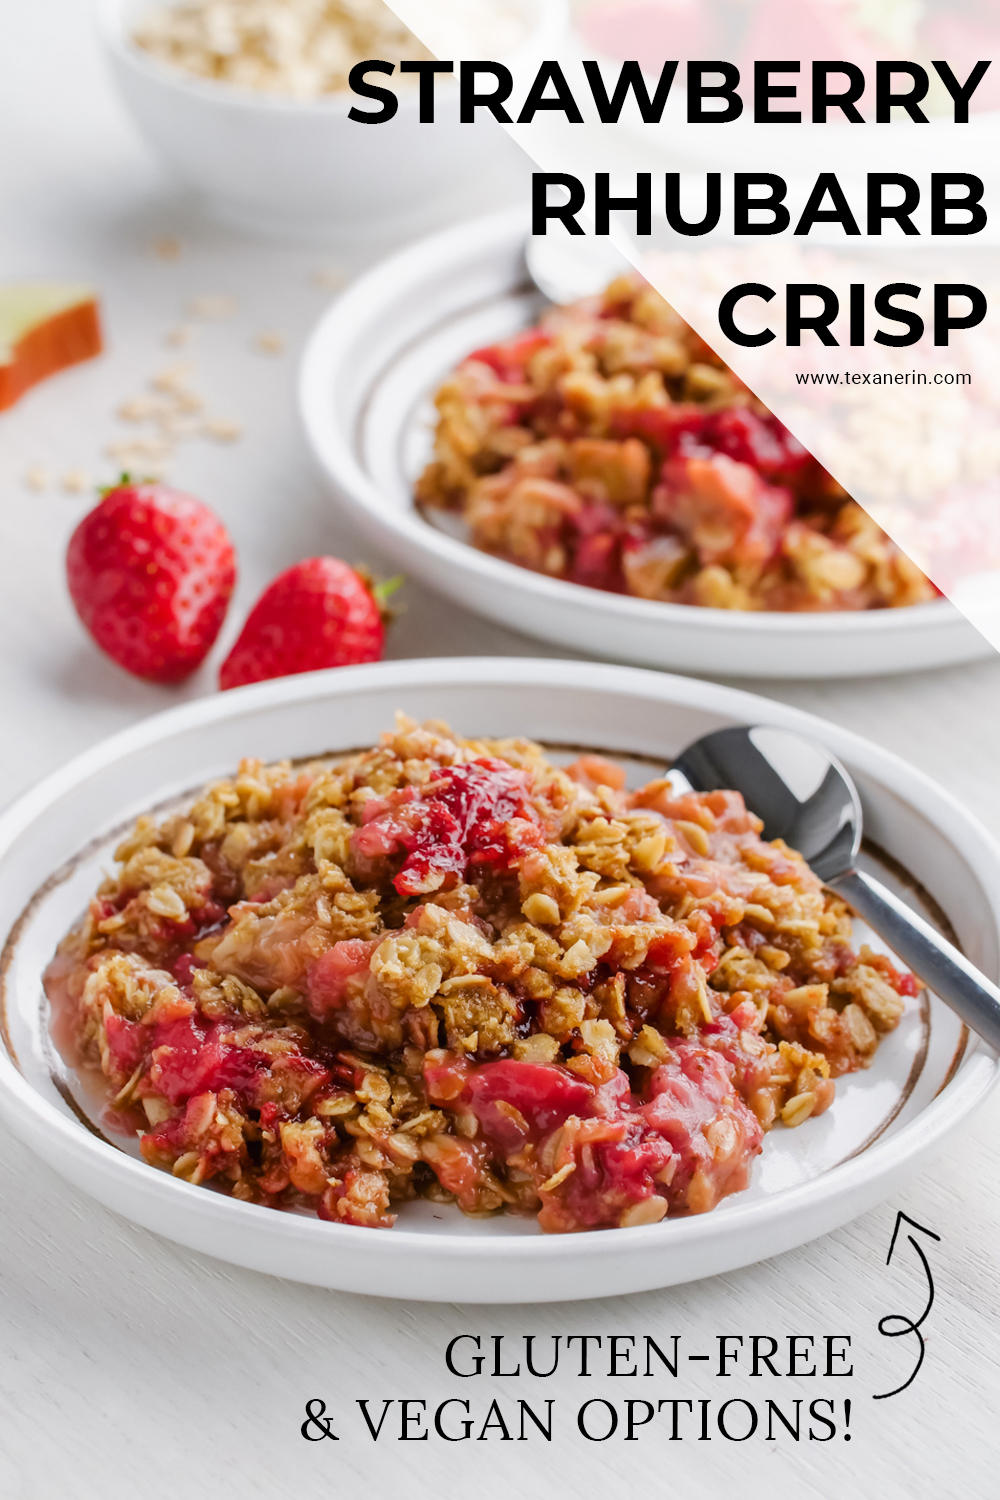 This easy strawberry rhubarb crisp has a thick layer of oat-based topping, is gluten-free, whole grain and can easily be made dairy-free and vegan!!